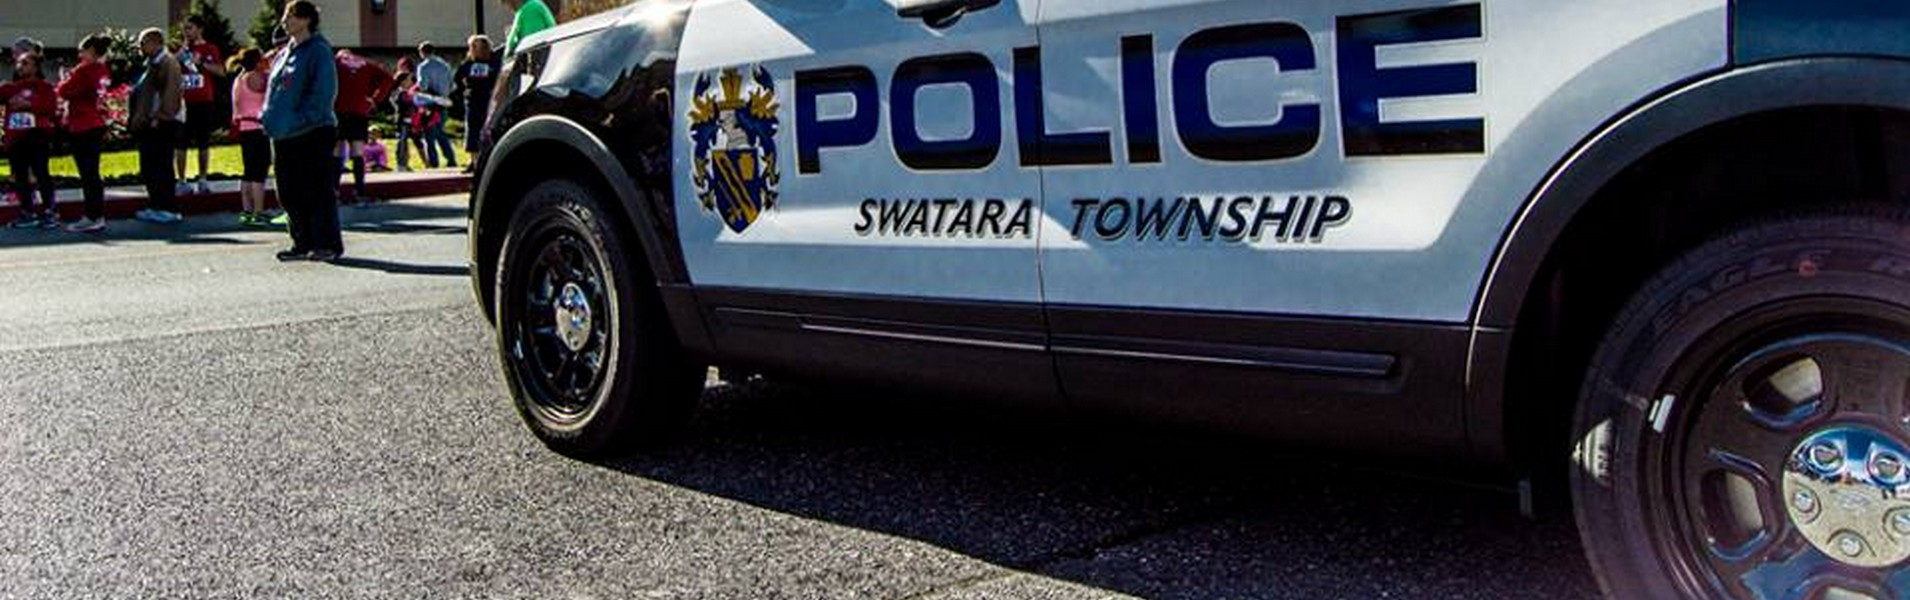 Fatal hit-and-run accident in Swatara Township, police looking for Honda Civic